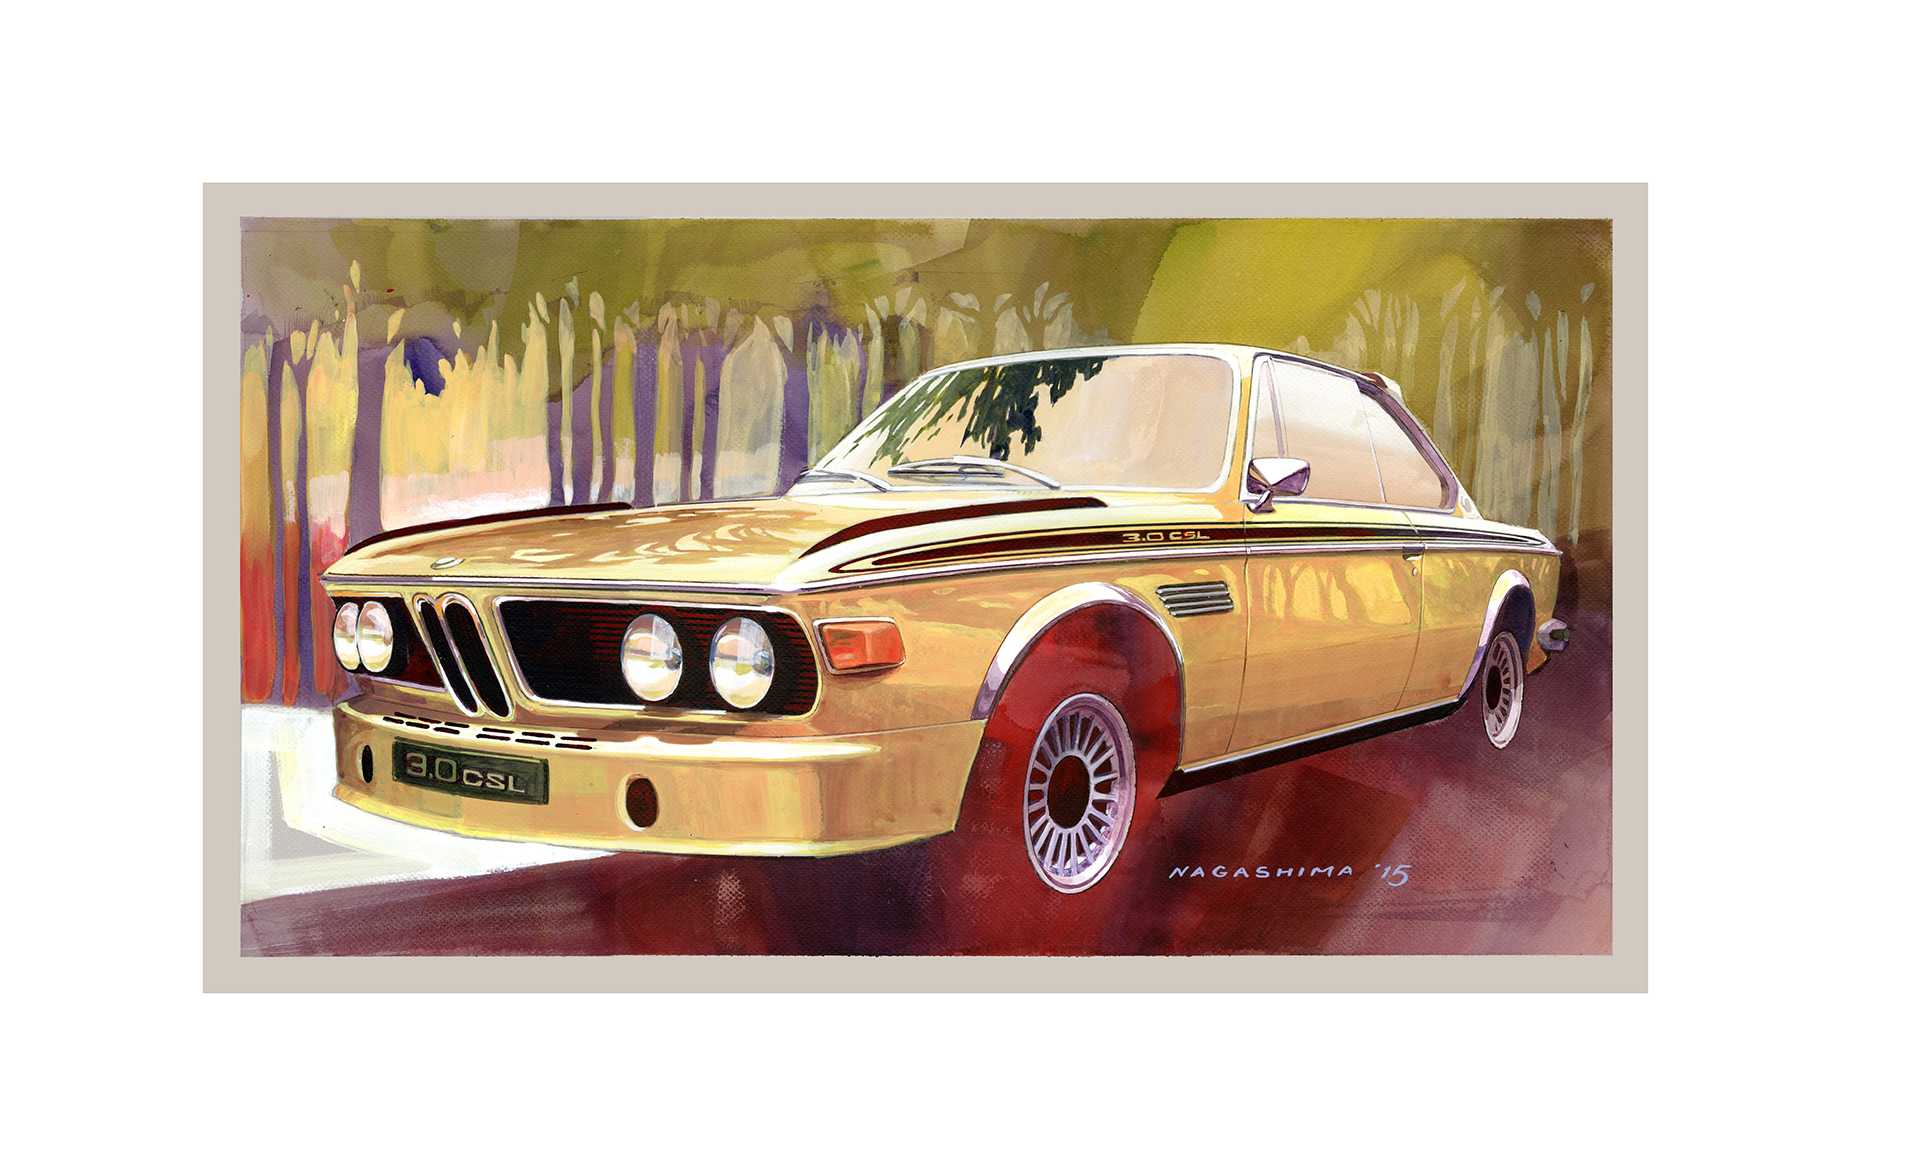 BMW 3.0 CS - artwork